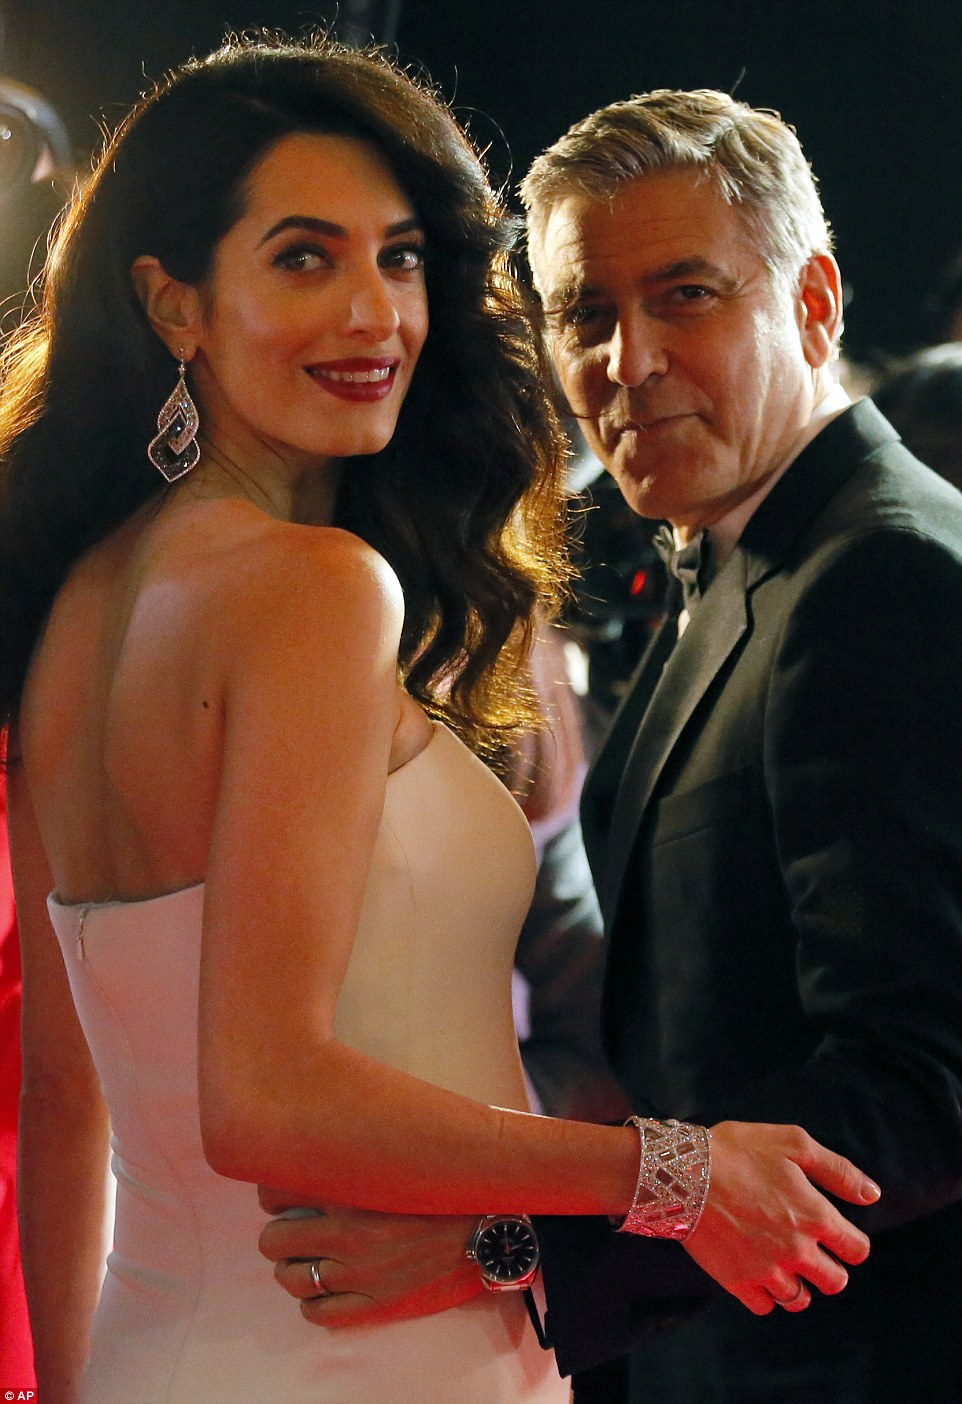 Pregnant Amal Clooney Attends Cesar Awards in Paris